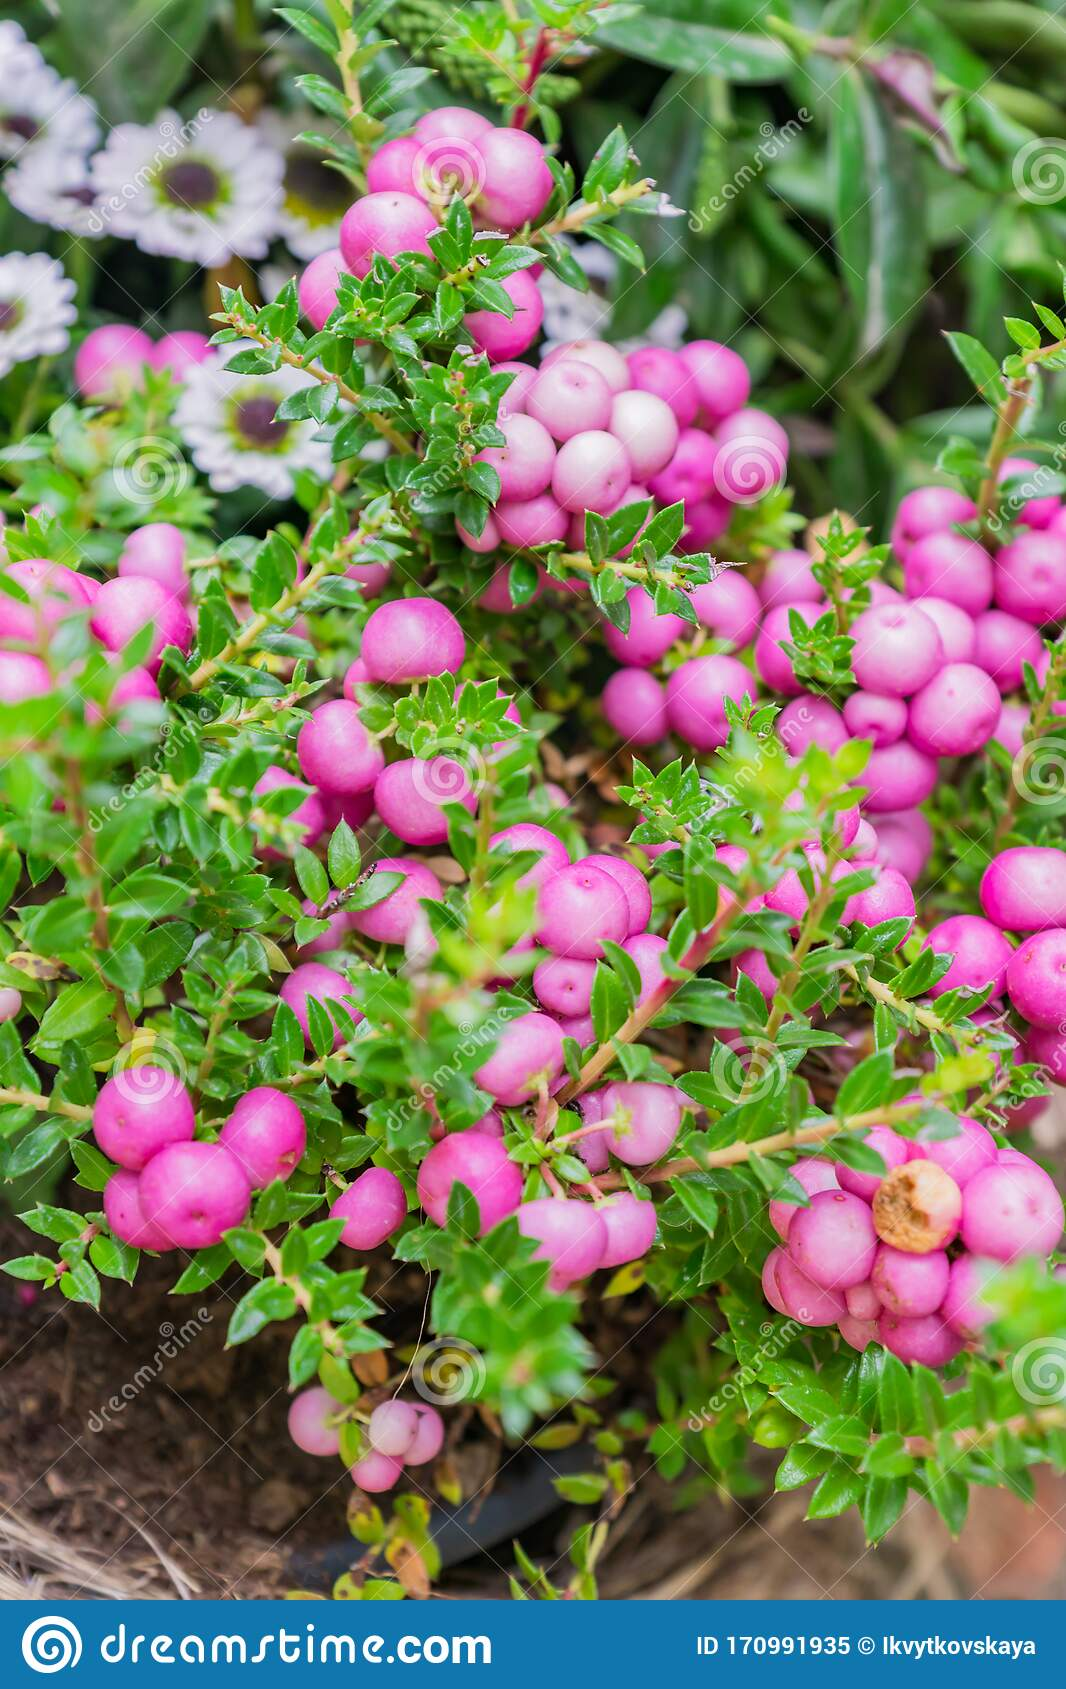 Pernettya Pink.Pernettya Mucronata Evergreen Shrub With Pink Berries Autumn Plant In Clay Flower Pot Stock Image Image Of Autumn Botany 170991935